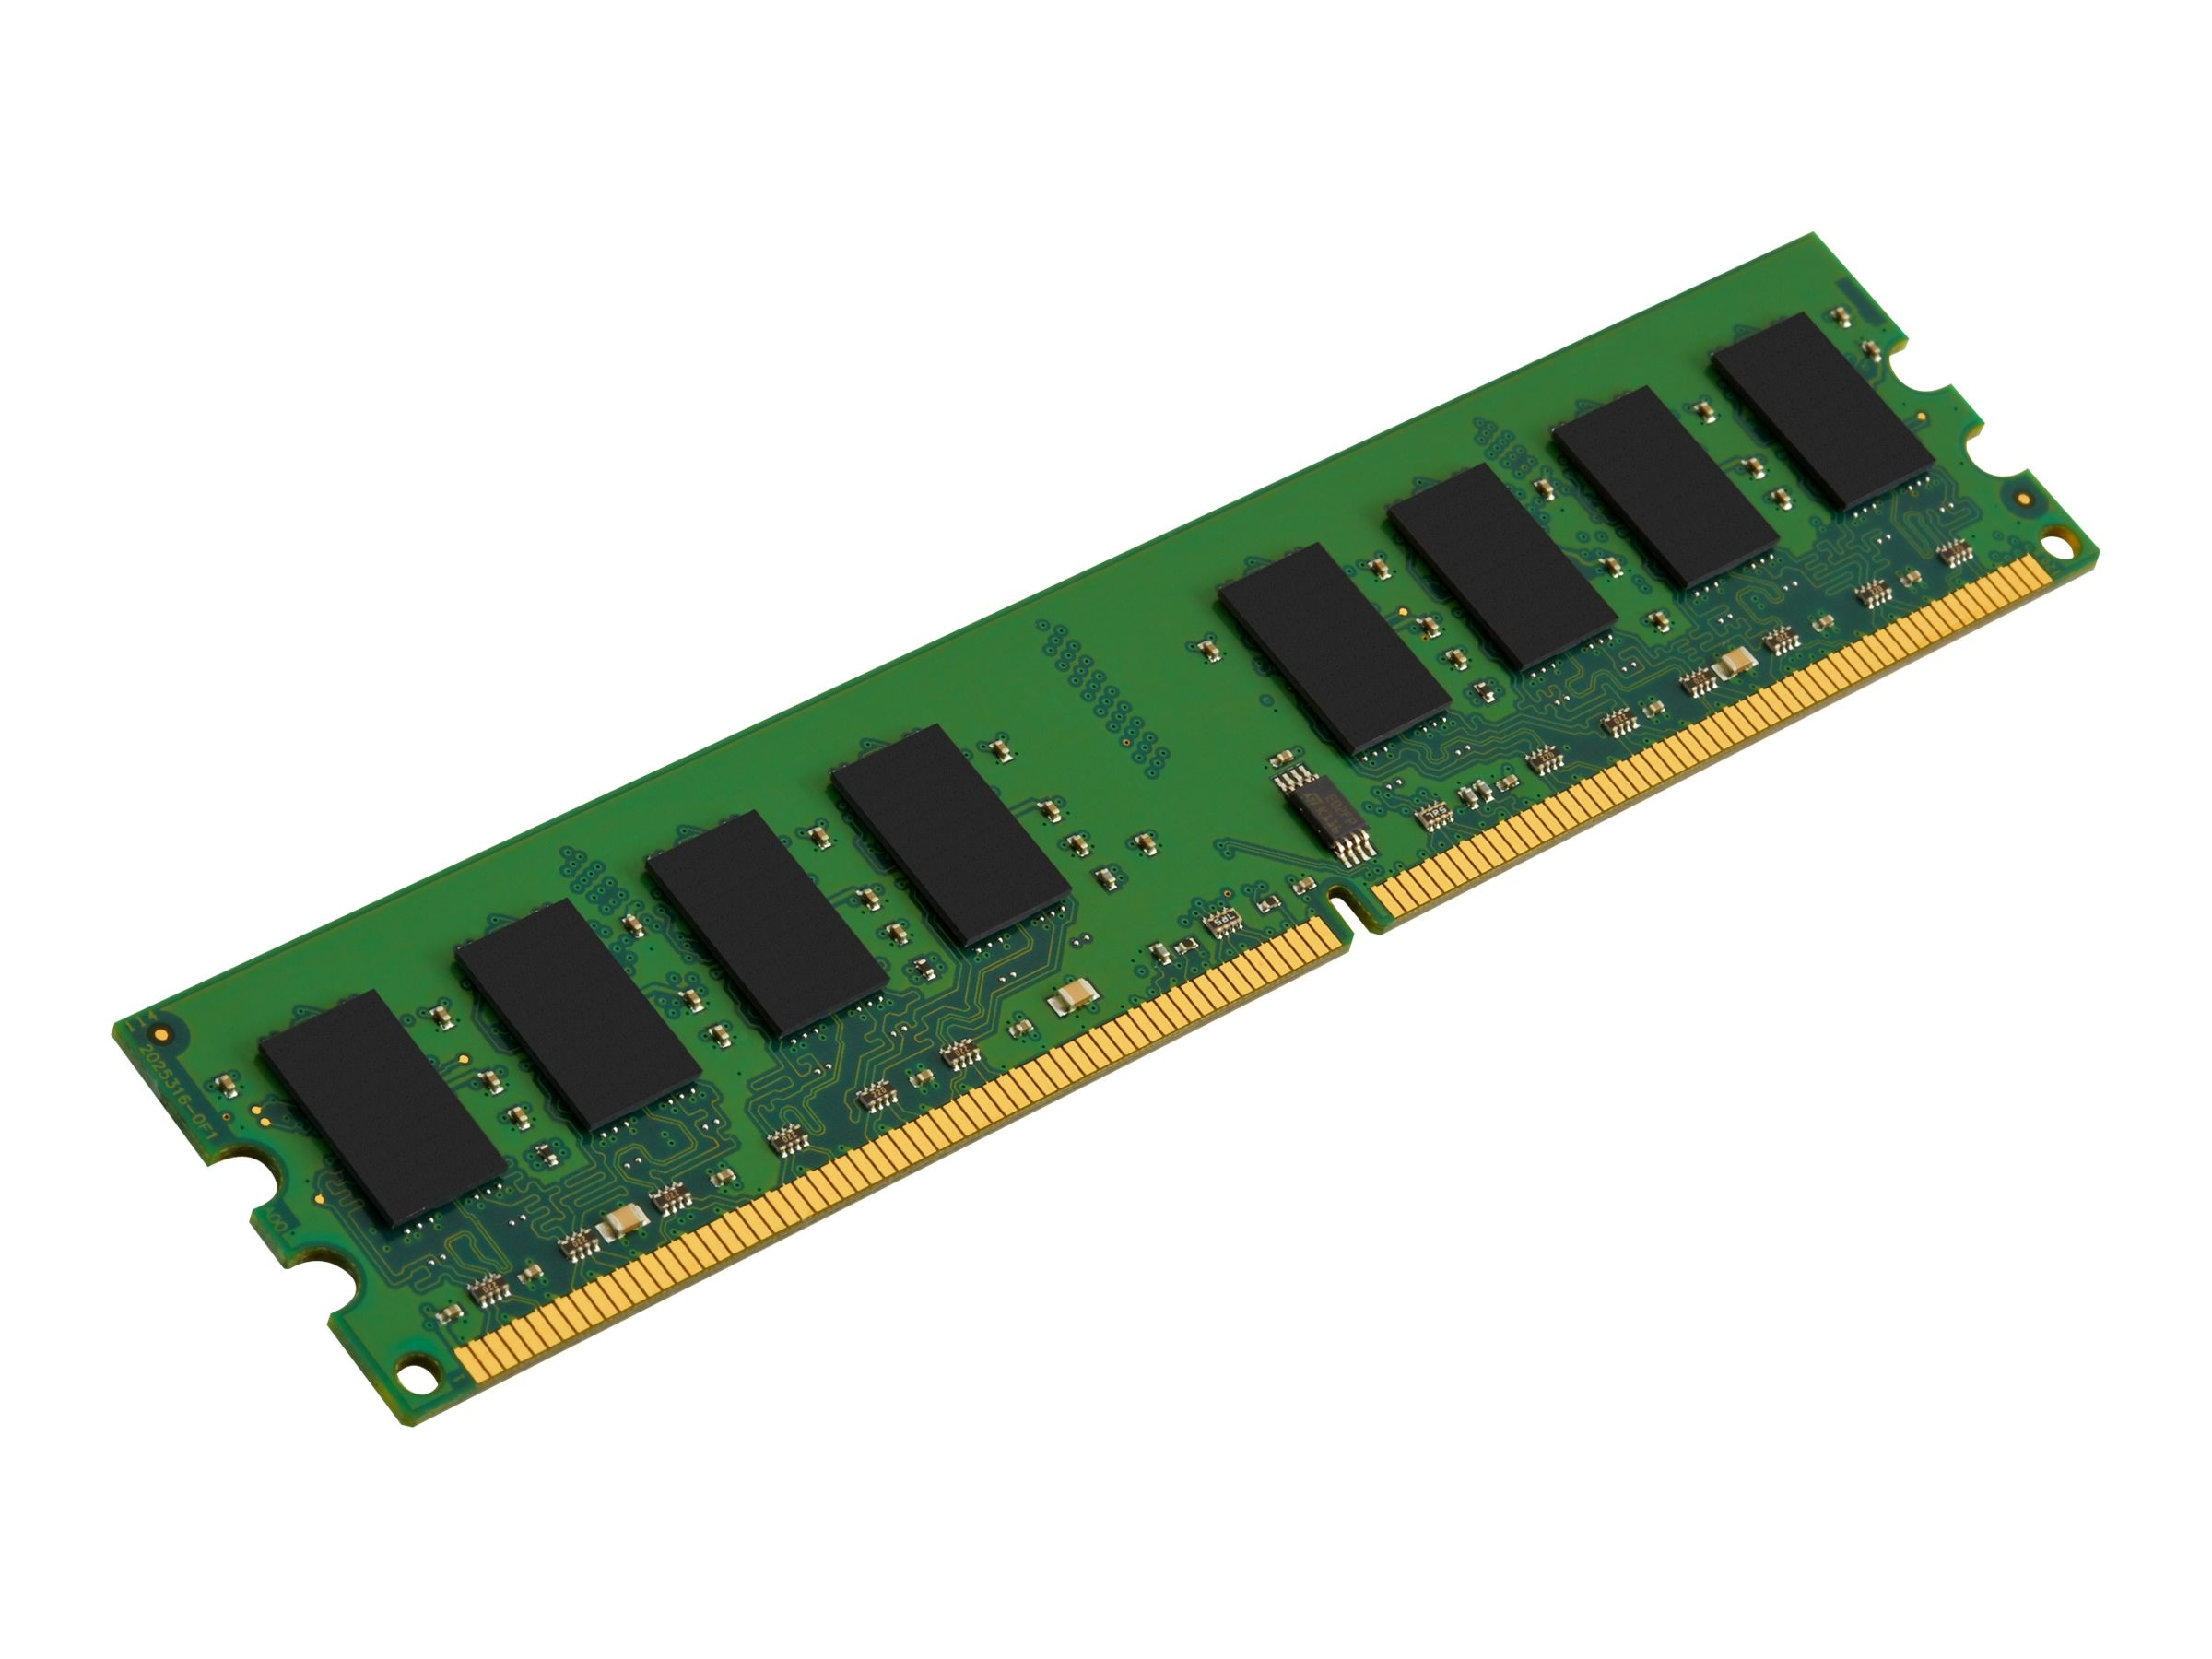 Kingston 2GB PC2-5300 240-pin DDR2 SDRAM UDIMM for Select Dell Models, KTD-DM8400B/2G, 7191436, Memory